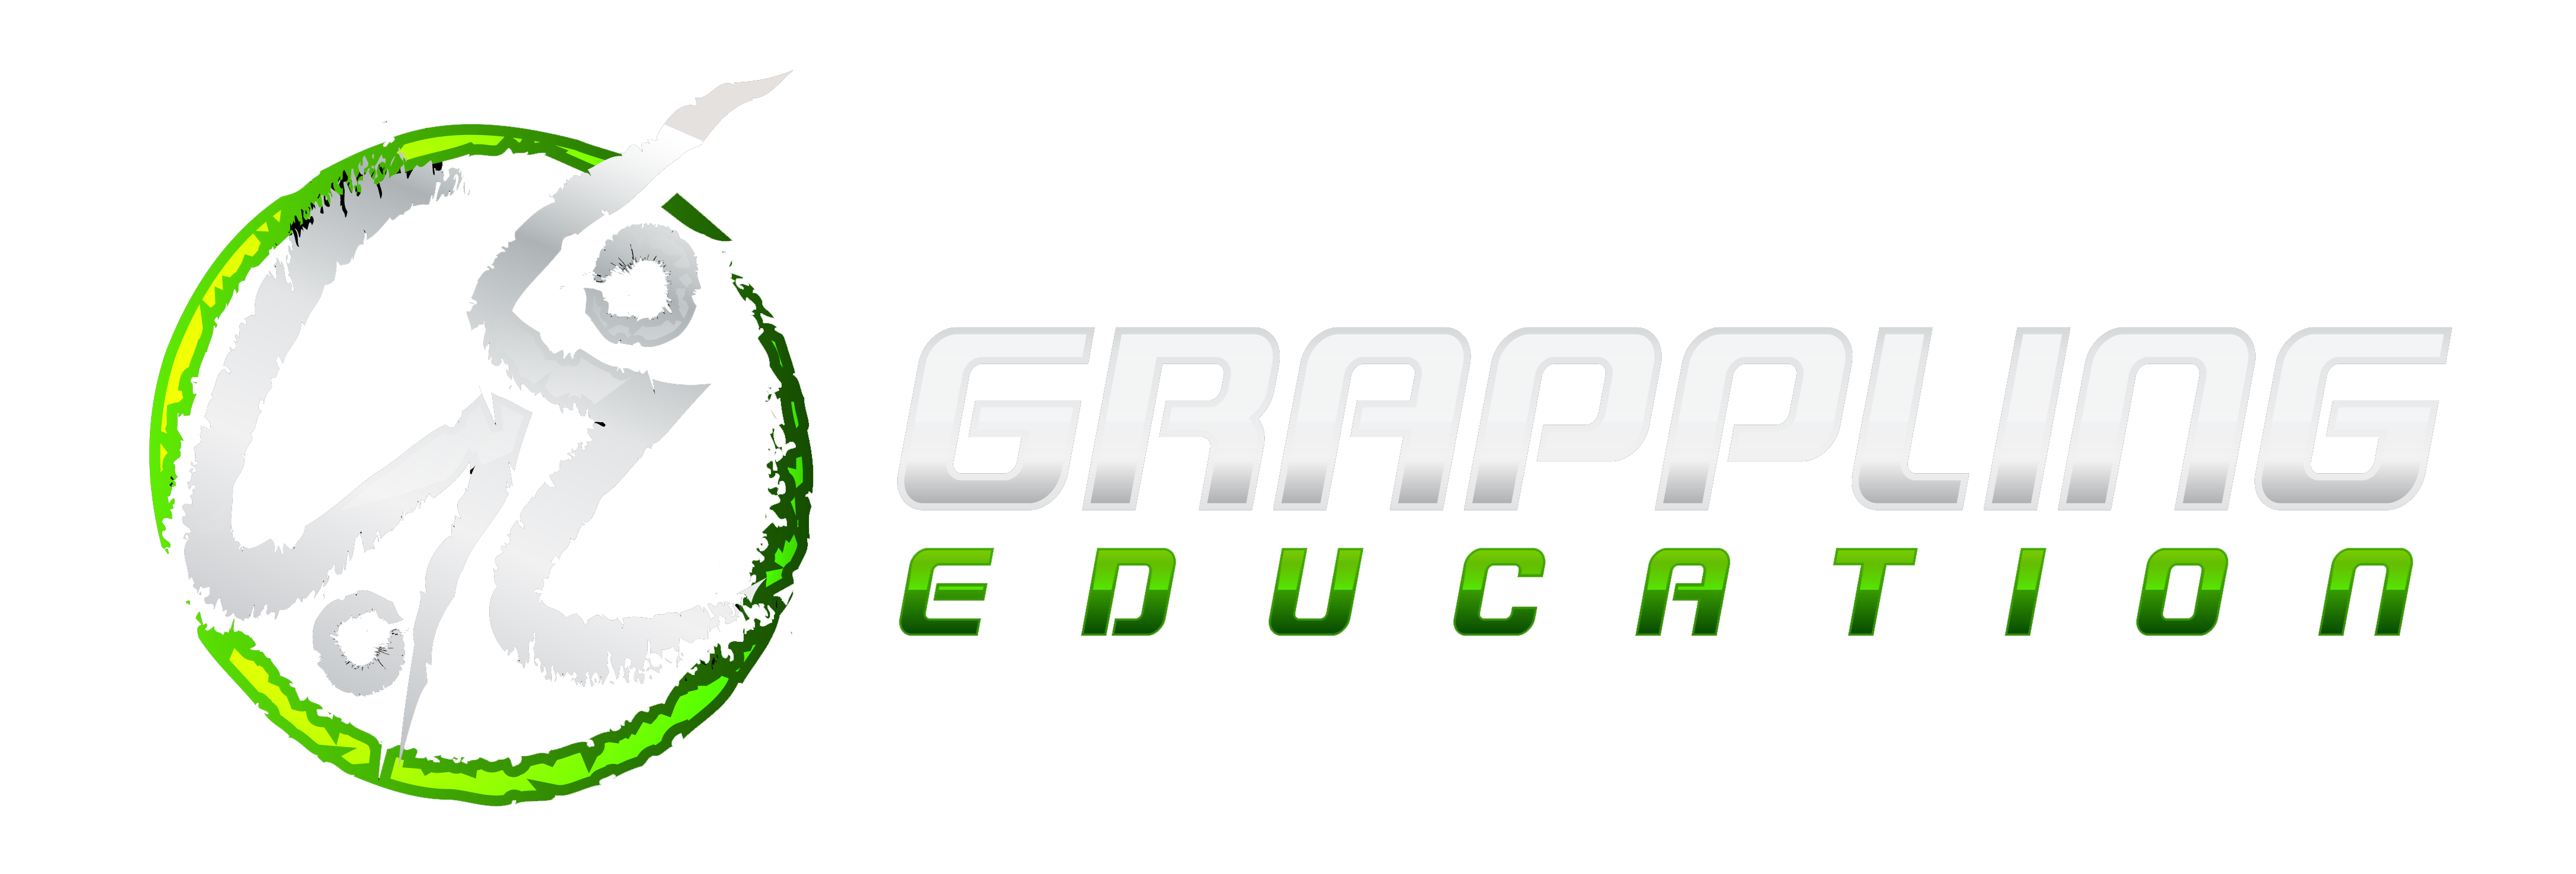 grappling-education